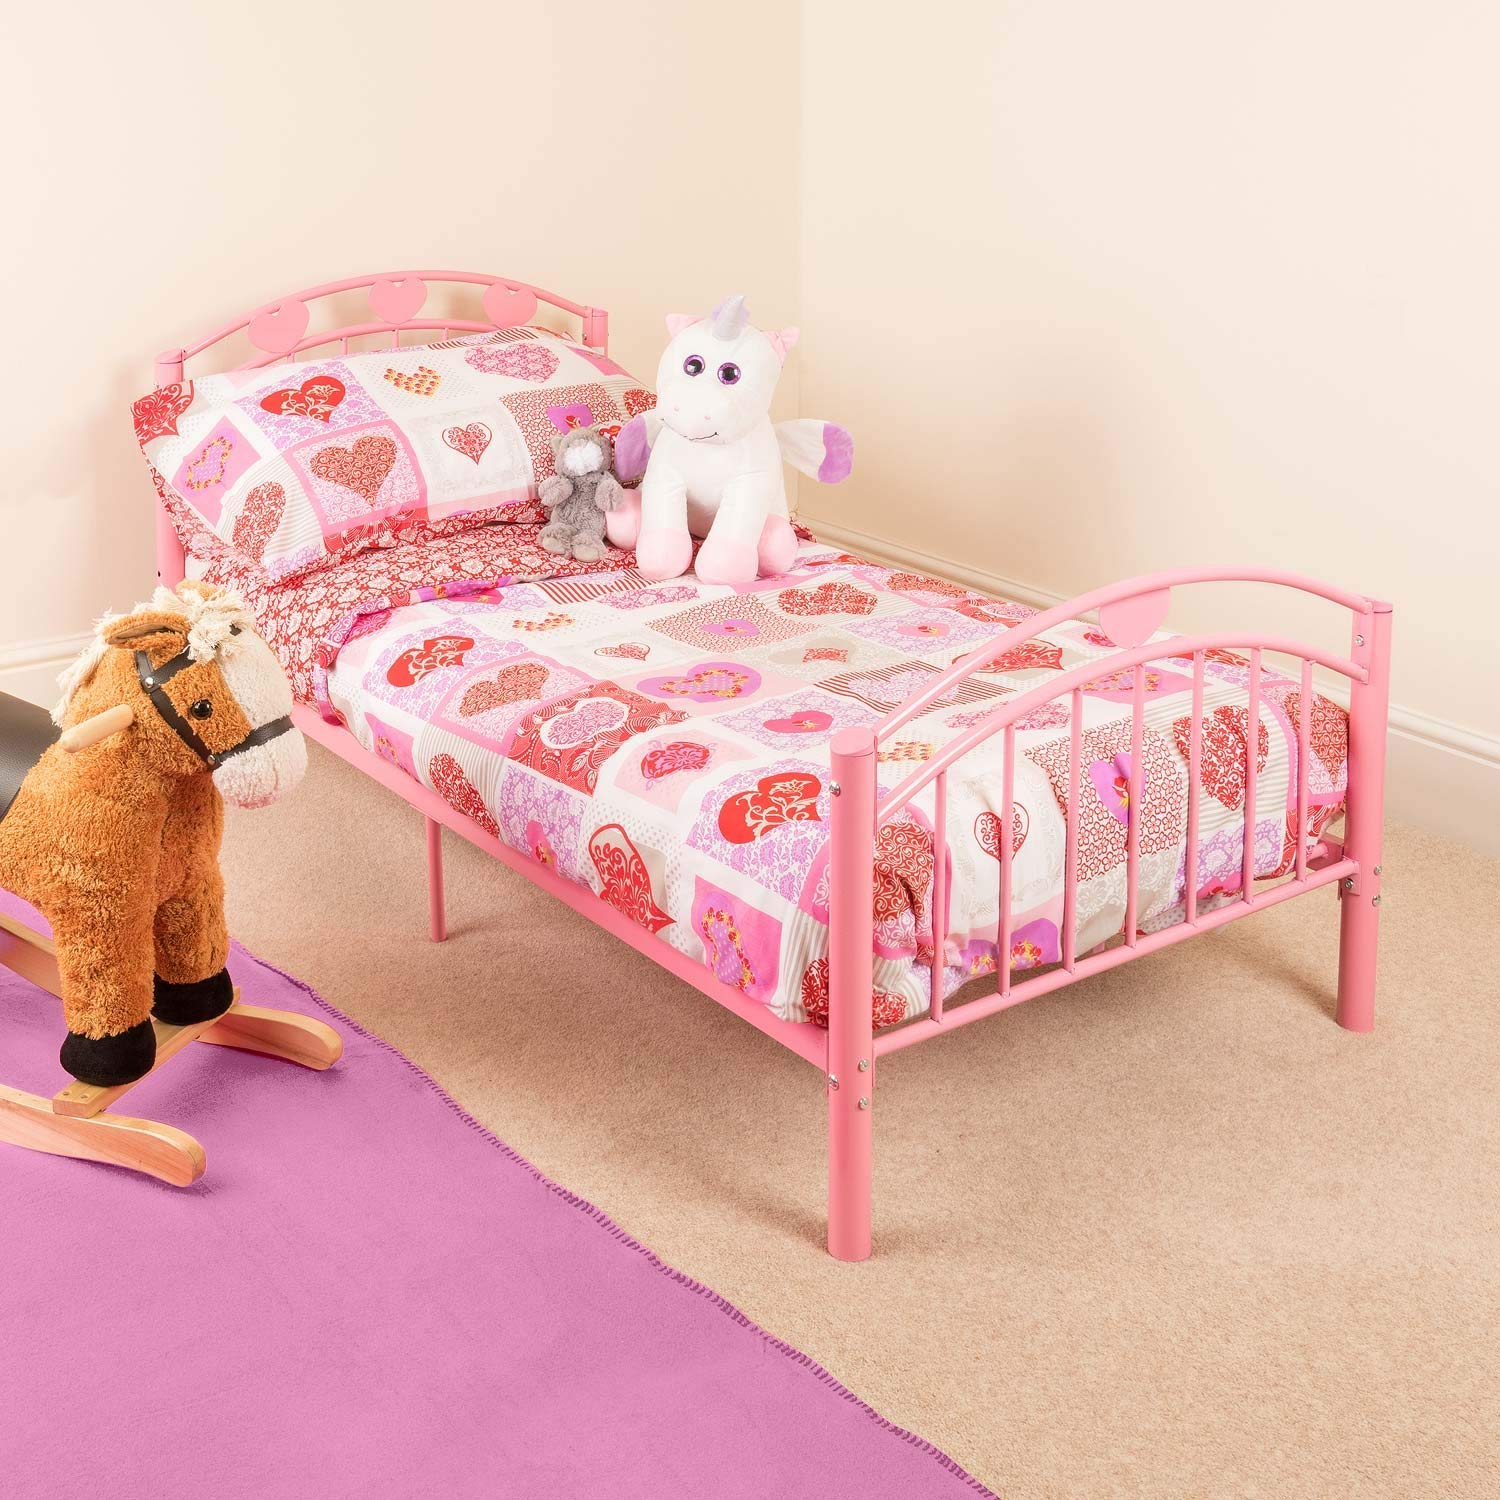 pink toddler metal bed frame kids bedroom furniture childrens bedframe hearts rh amazon co uk pink bedroom furniture sets furniture pink bedroom